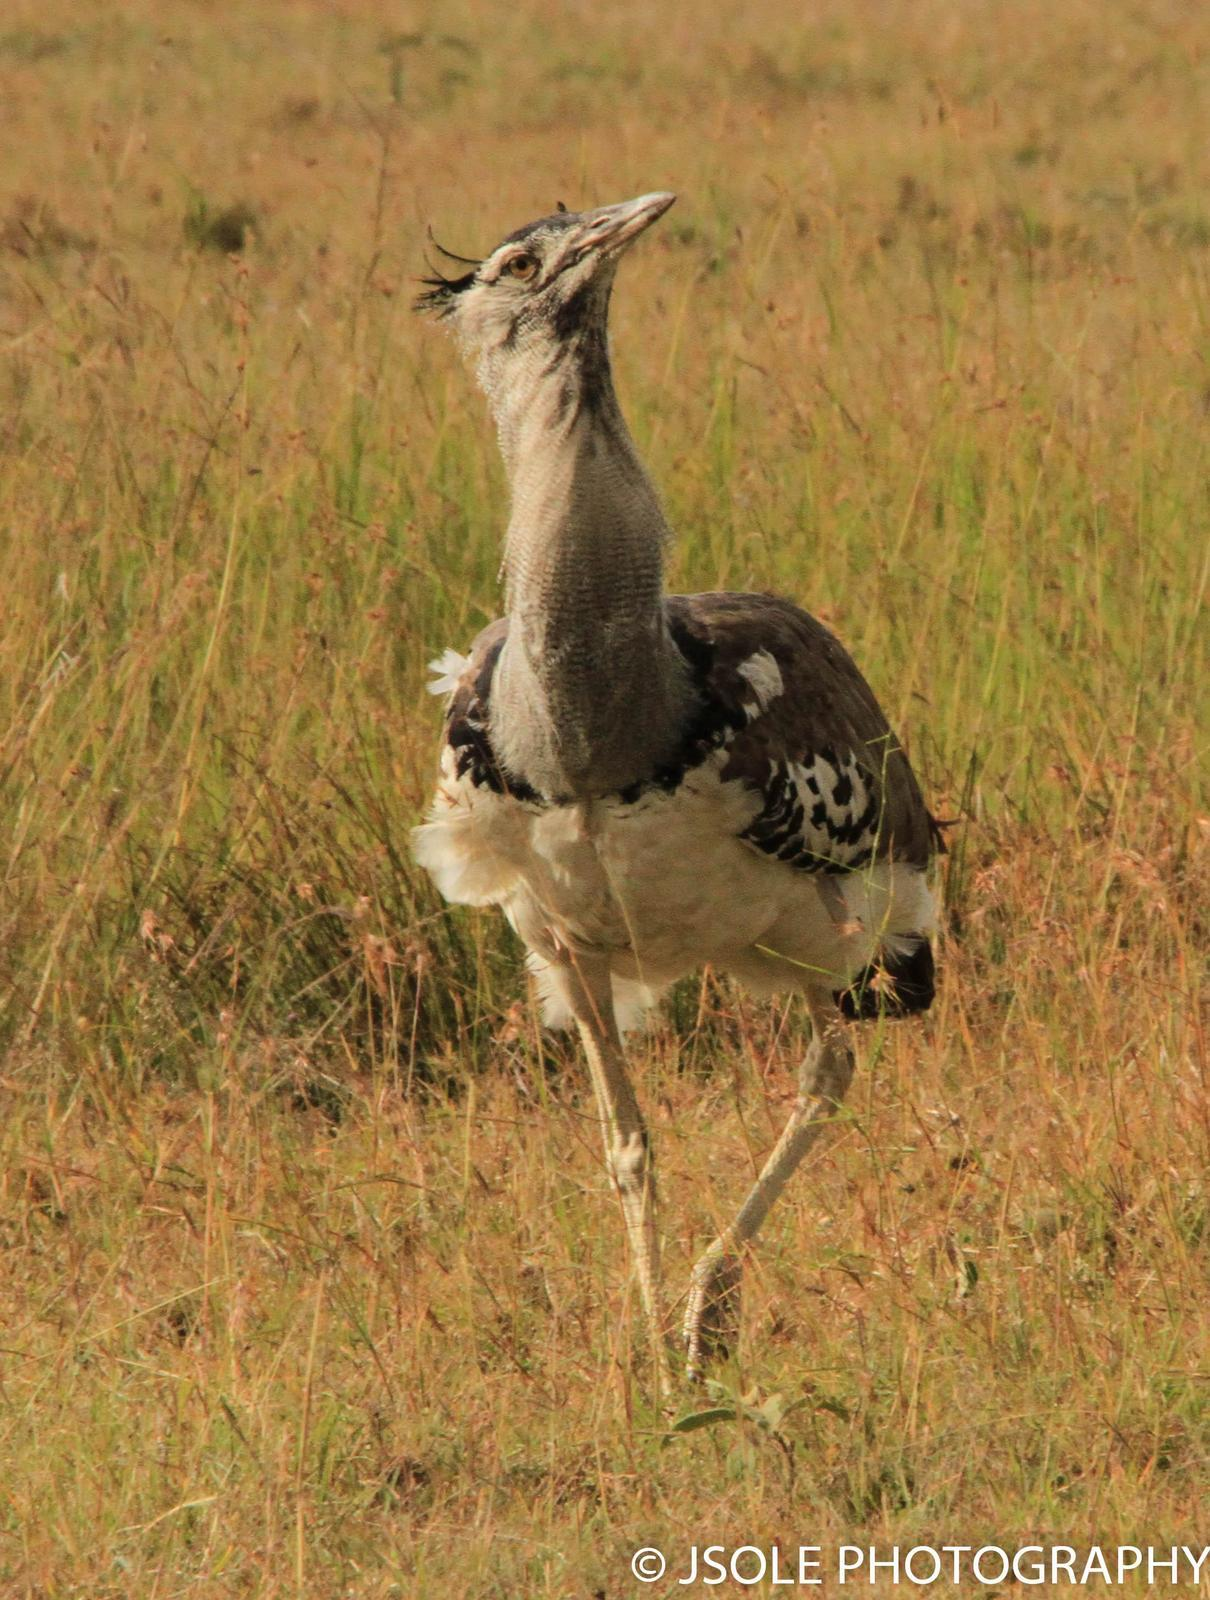 Kori Bustard Photo by Jeffery Sole